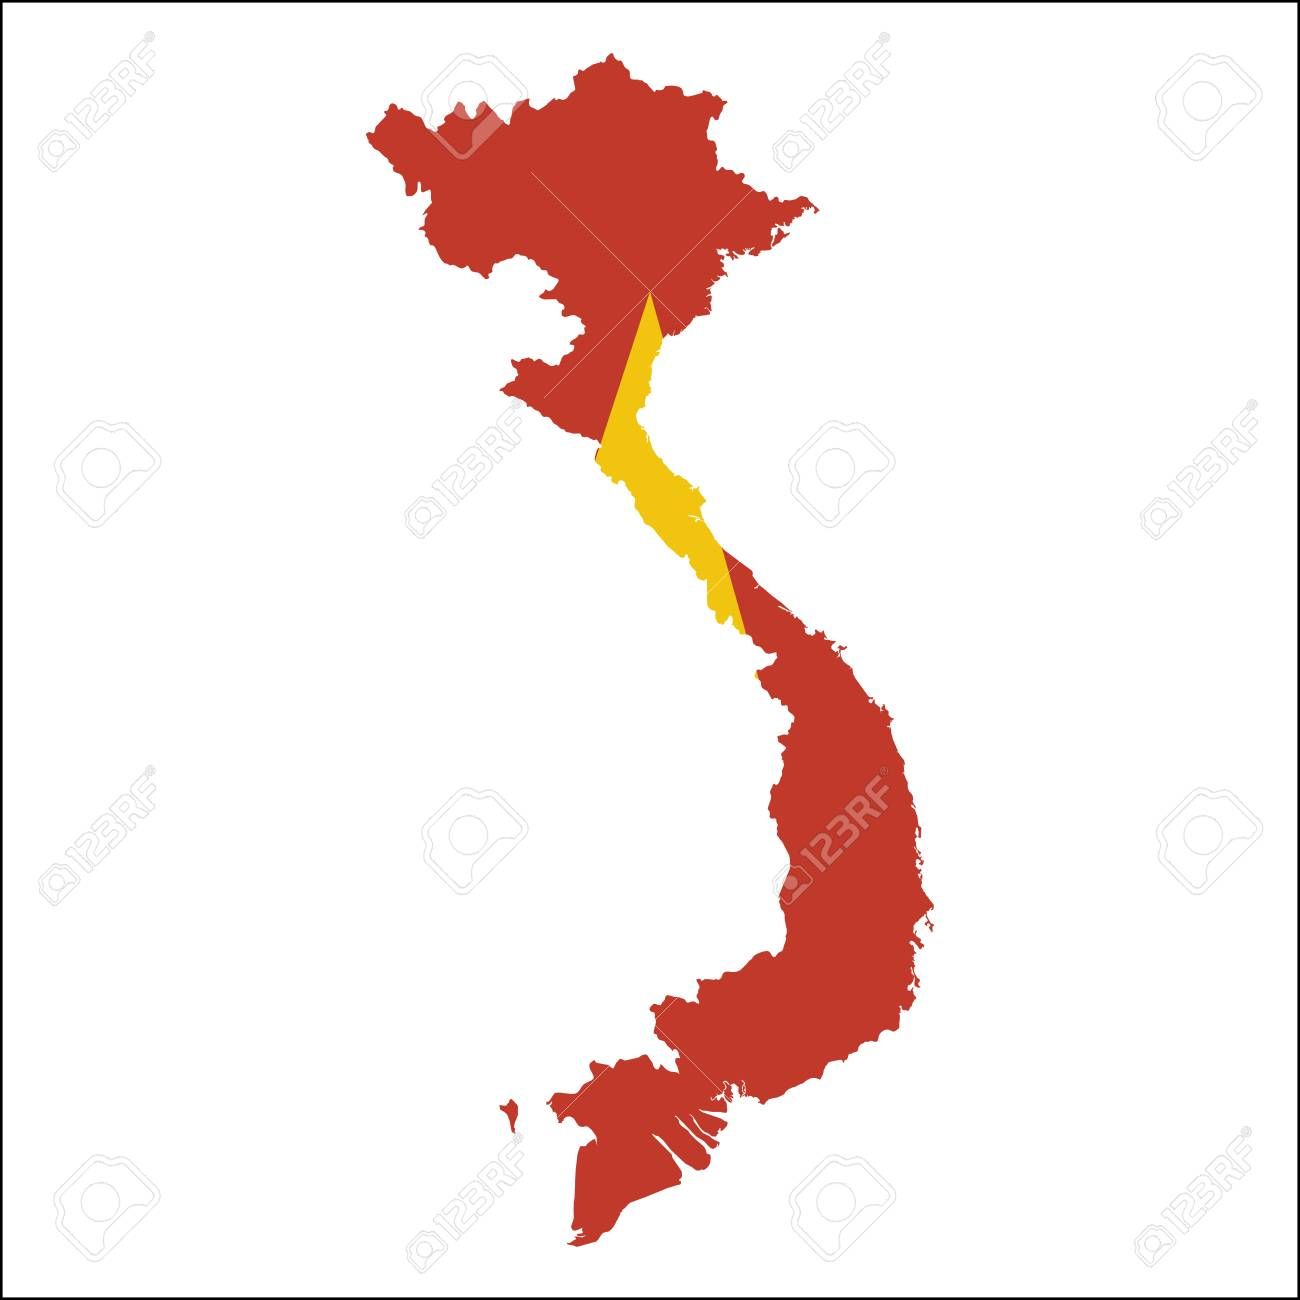 Vietnam high resolution map with national flag  Flag of the country